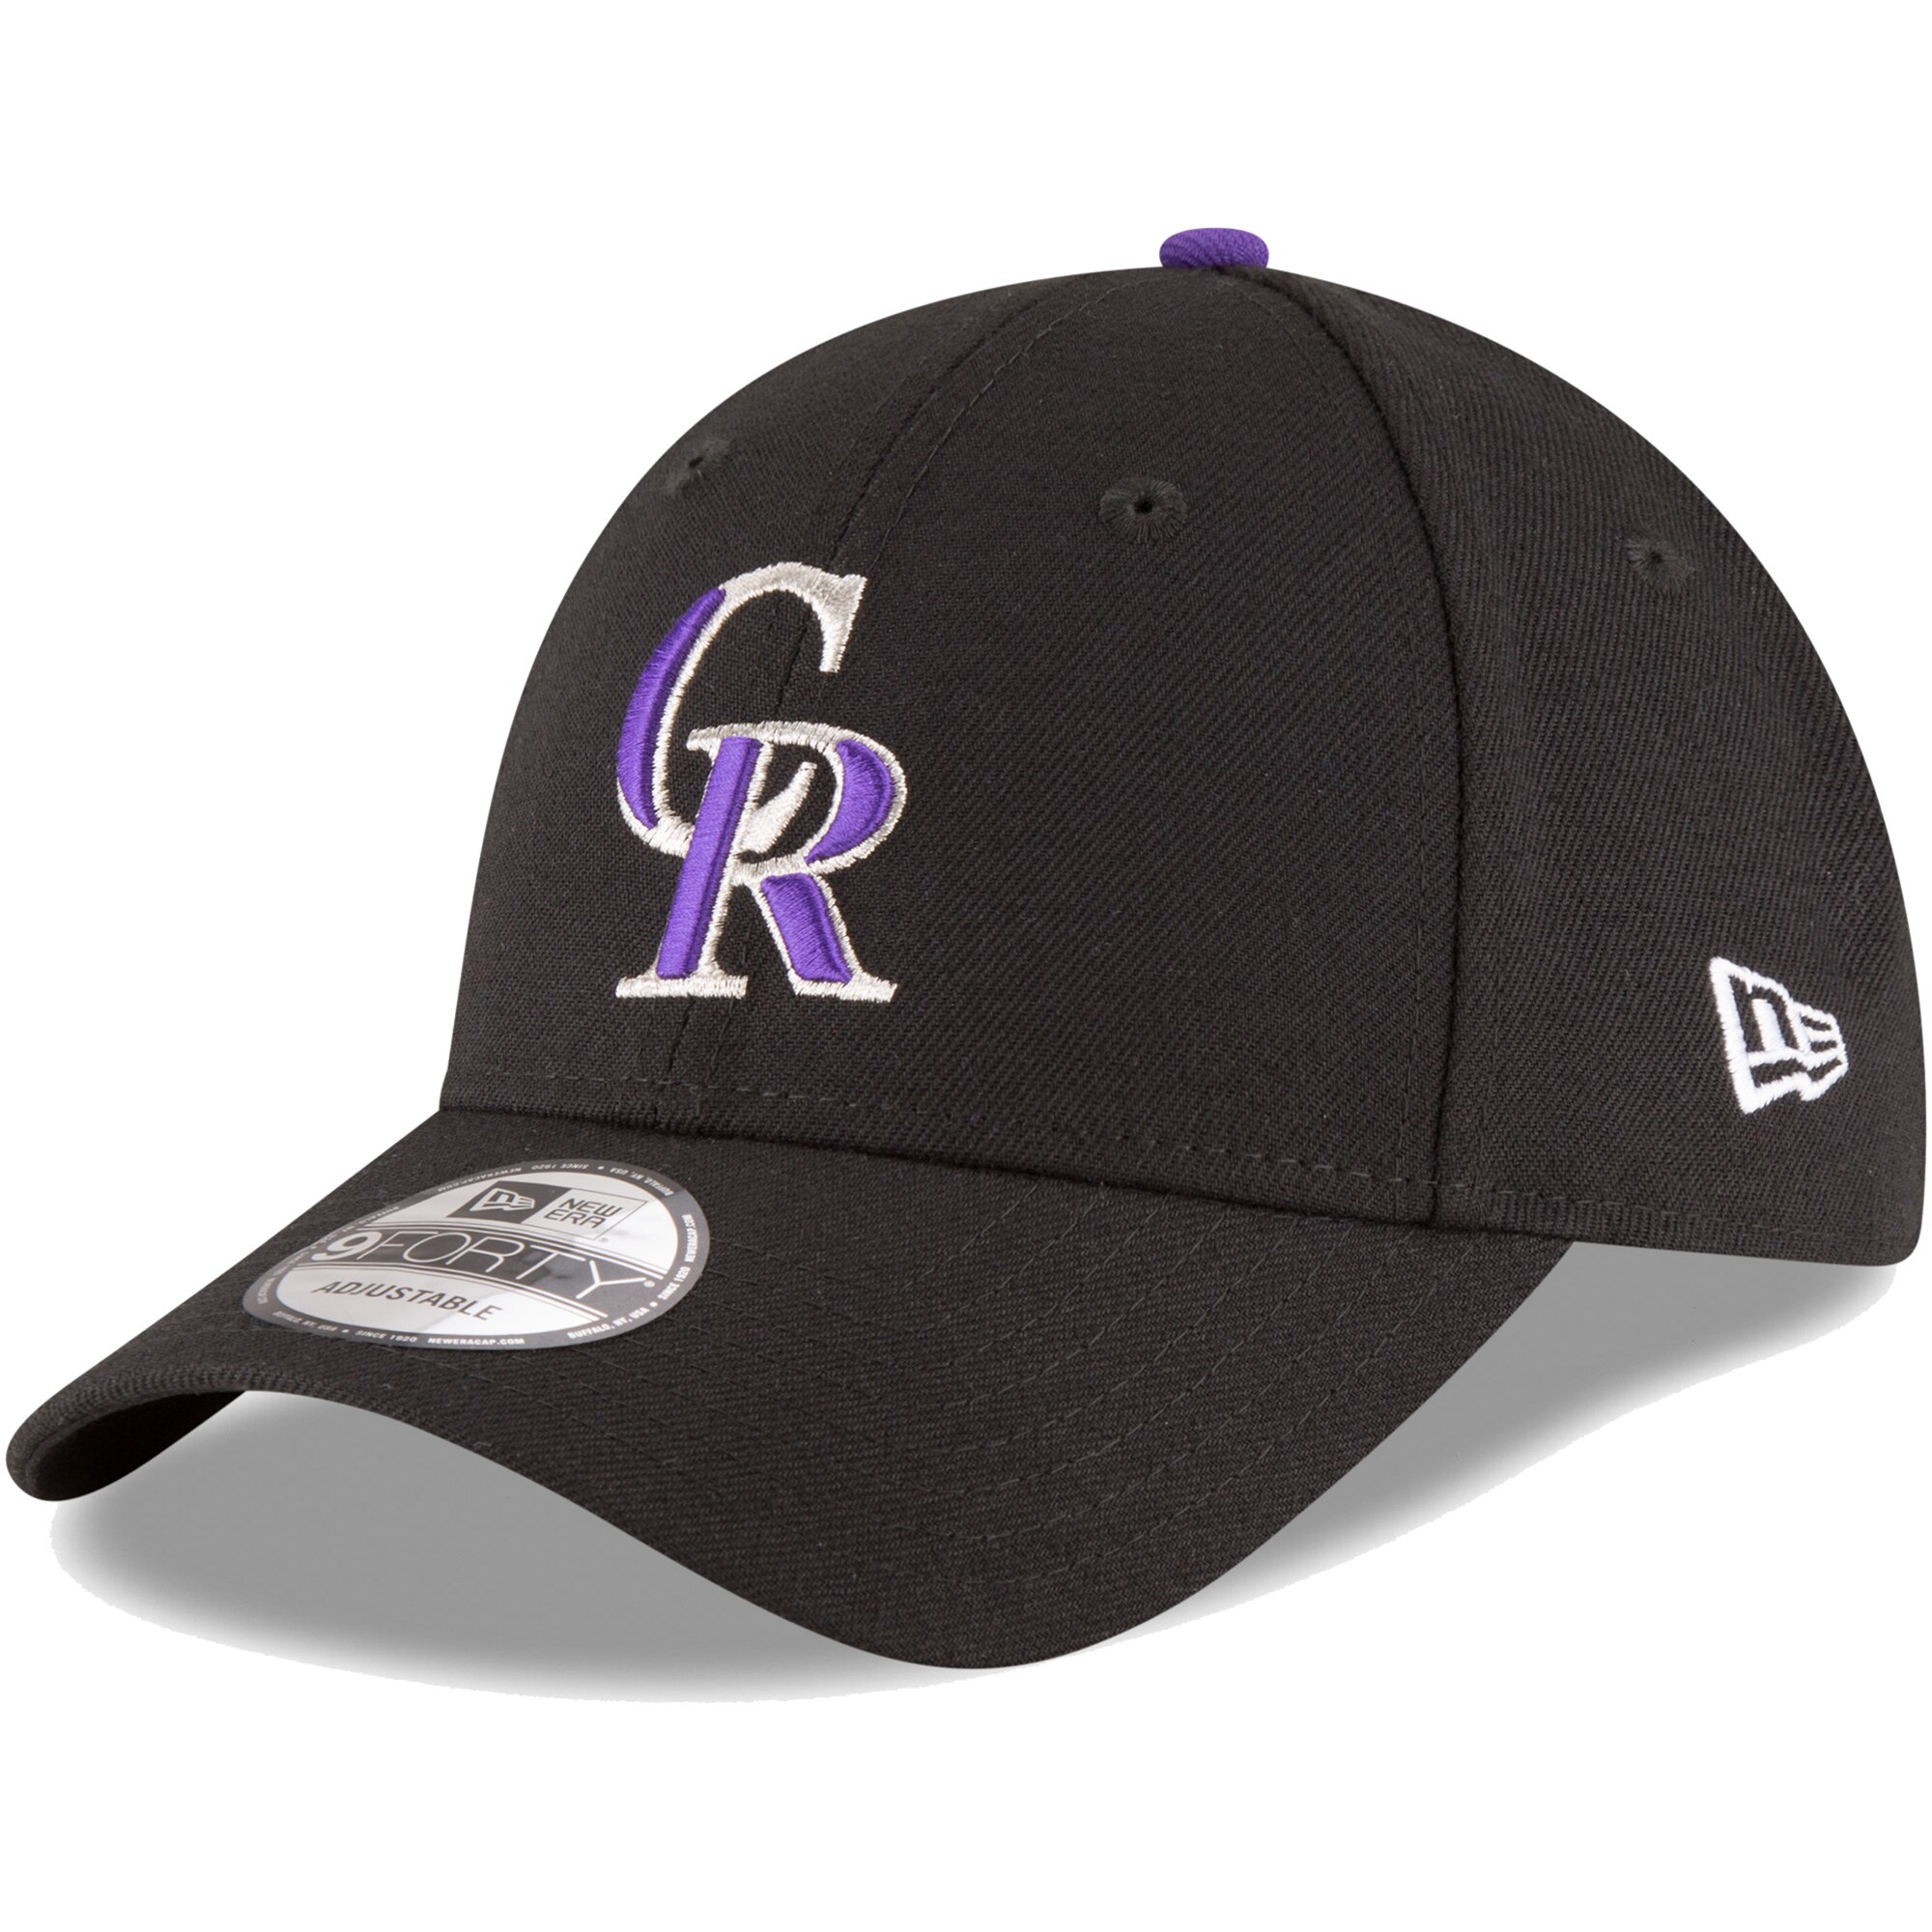 Colorado Rockies New Era Youth Game The League 9FORTY Adjustable Hat - Black